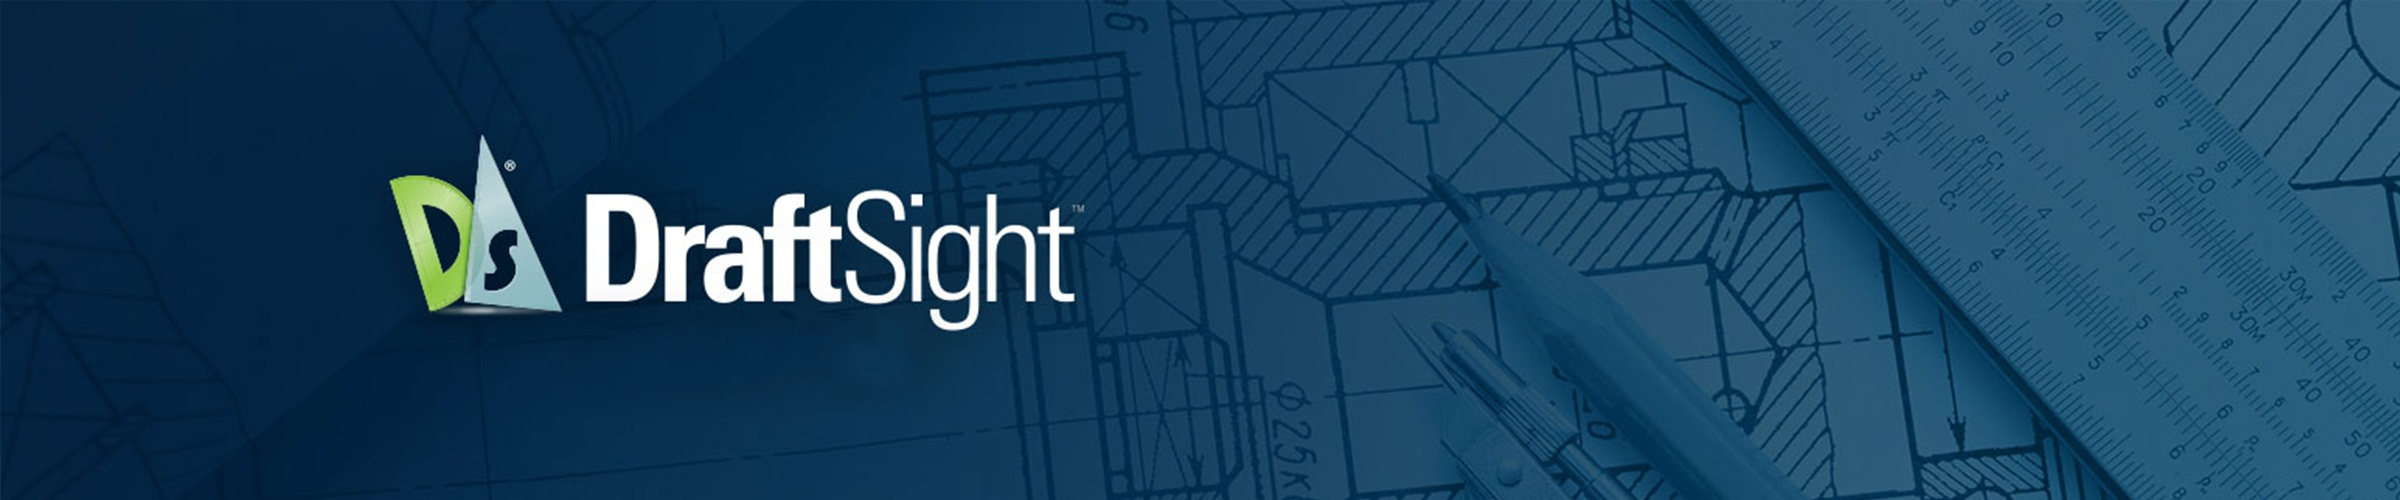 Draftsight banner2.jpg